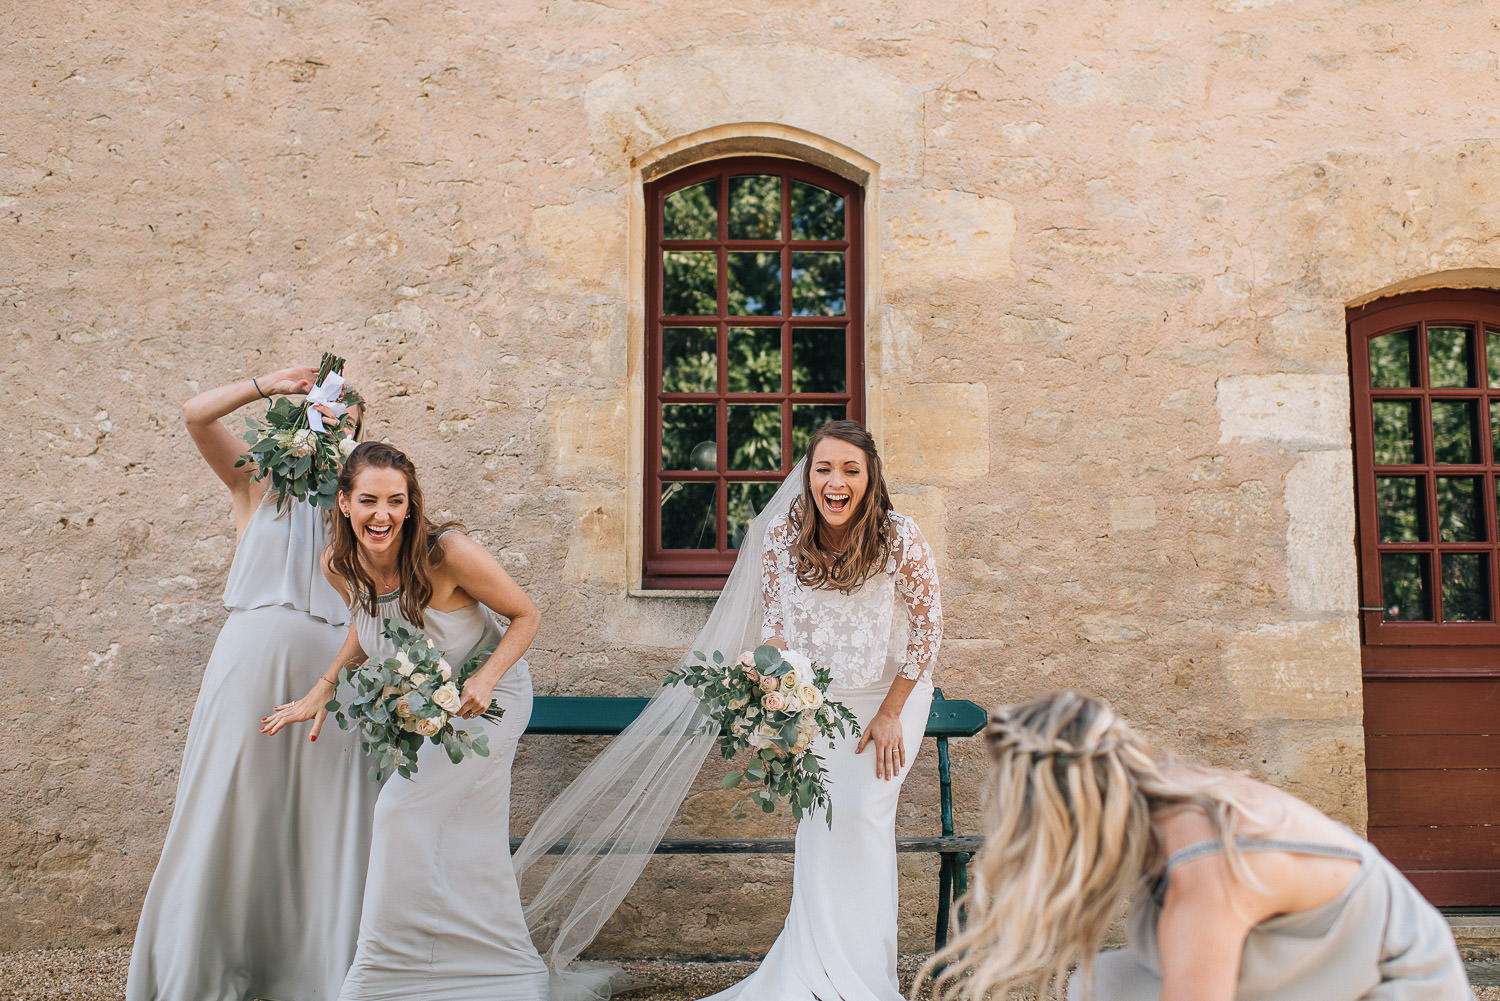 Ellerymay la fleuriste in chateau de la bourlie wedding by destination wedding photographer the shannons photography